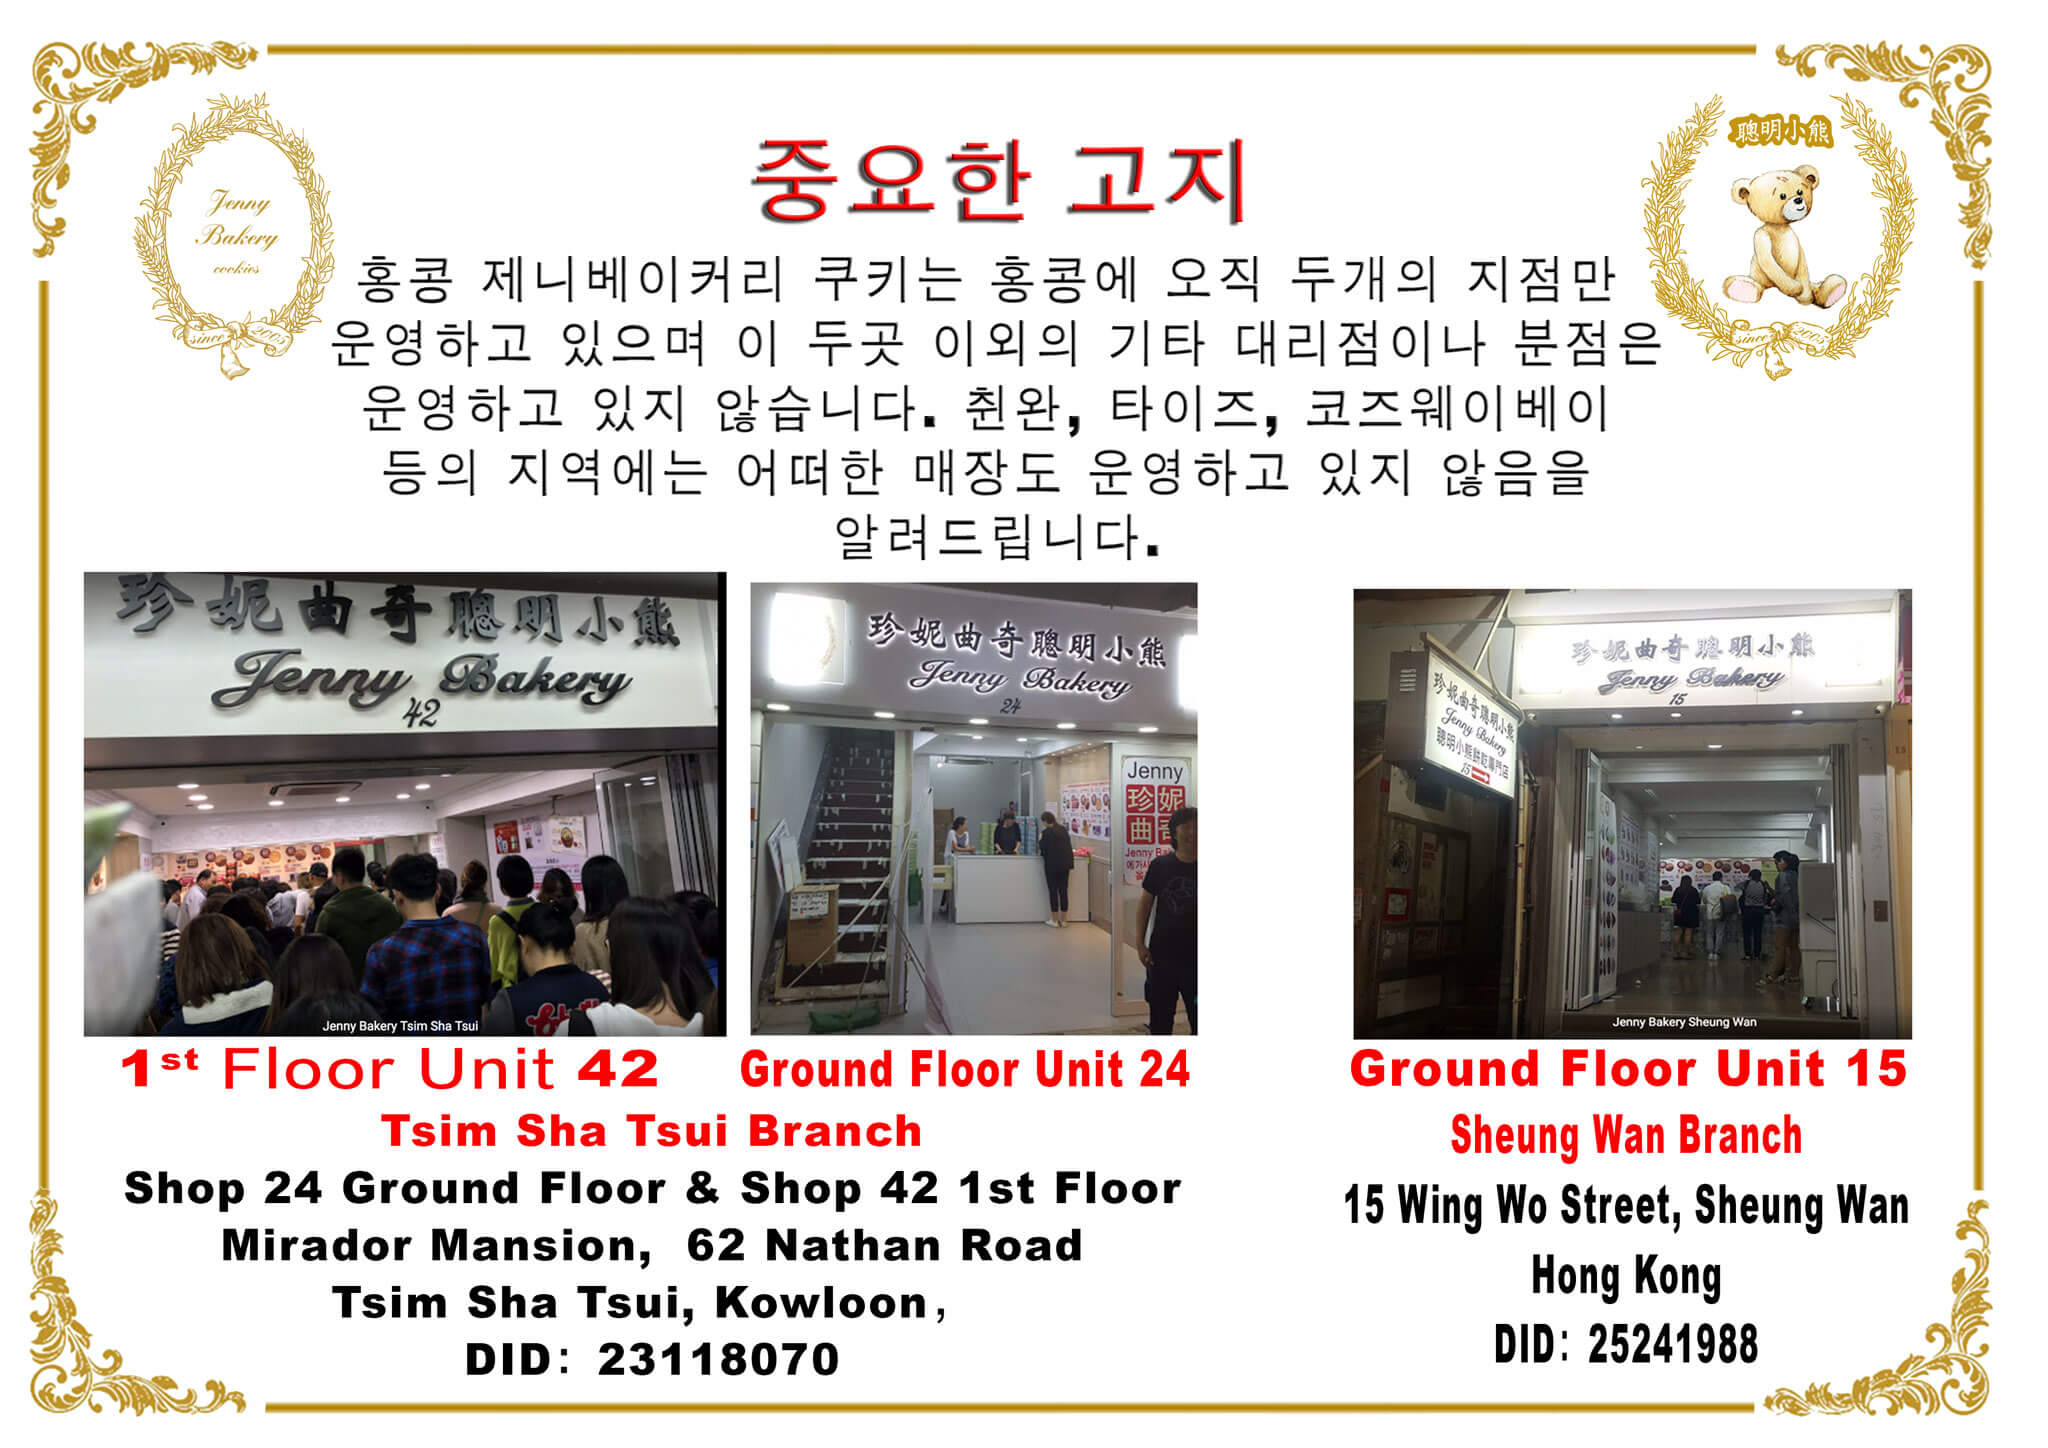 IMPORTANT NOTICE Jenny Bakery Jenny Bakery has only 2 branches in Hong Kong. We do not have any authorized resellers or distributors in any other